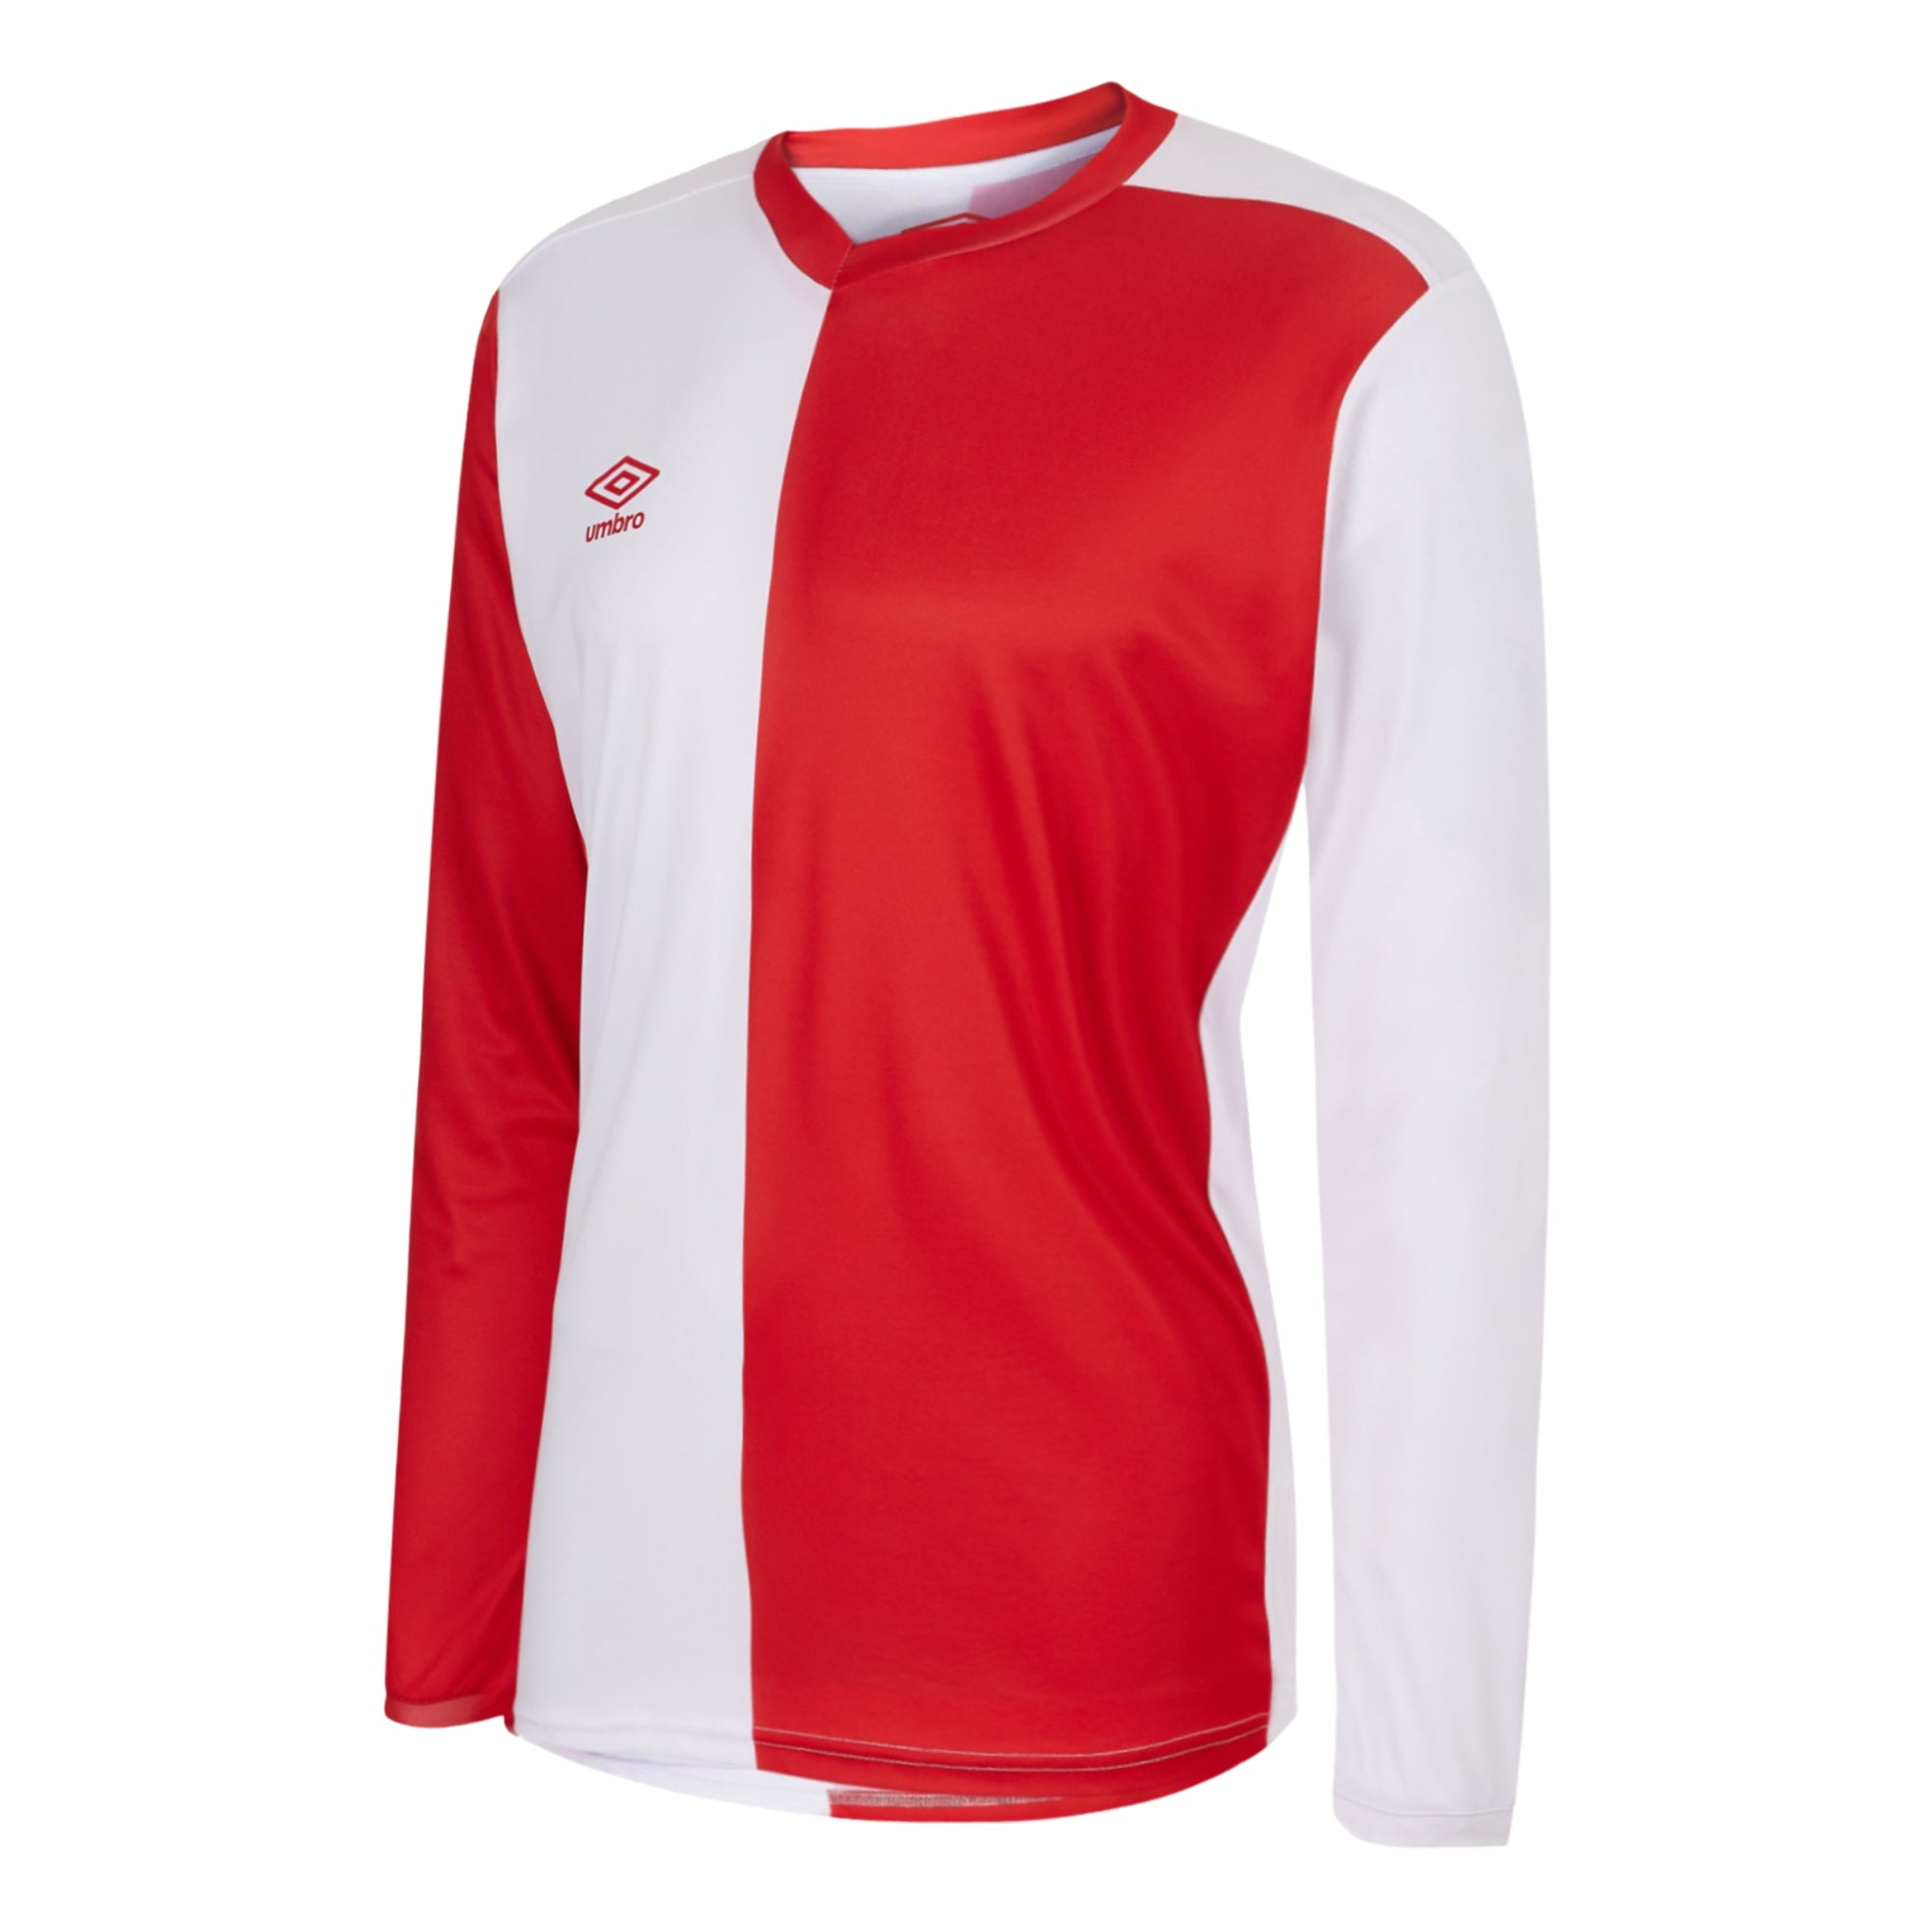 Umbro 50/50 LS Jersey - Vermillion/White